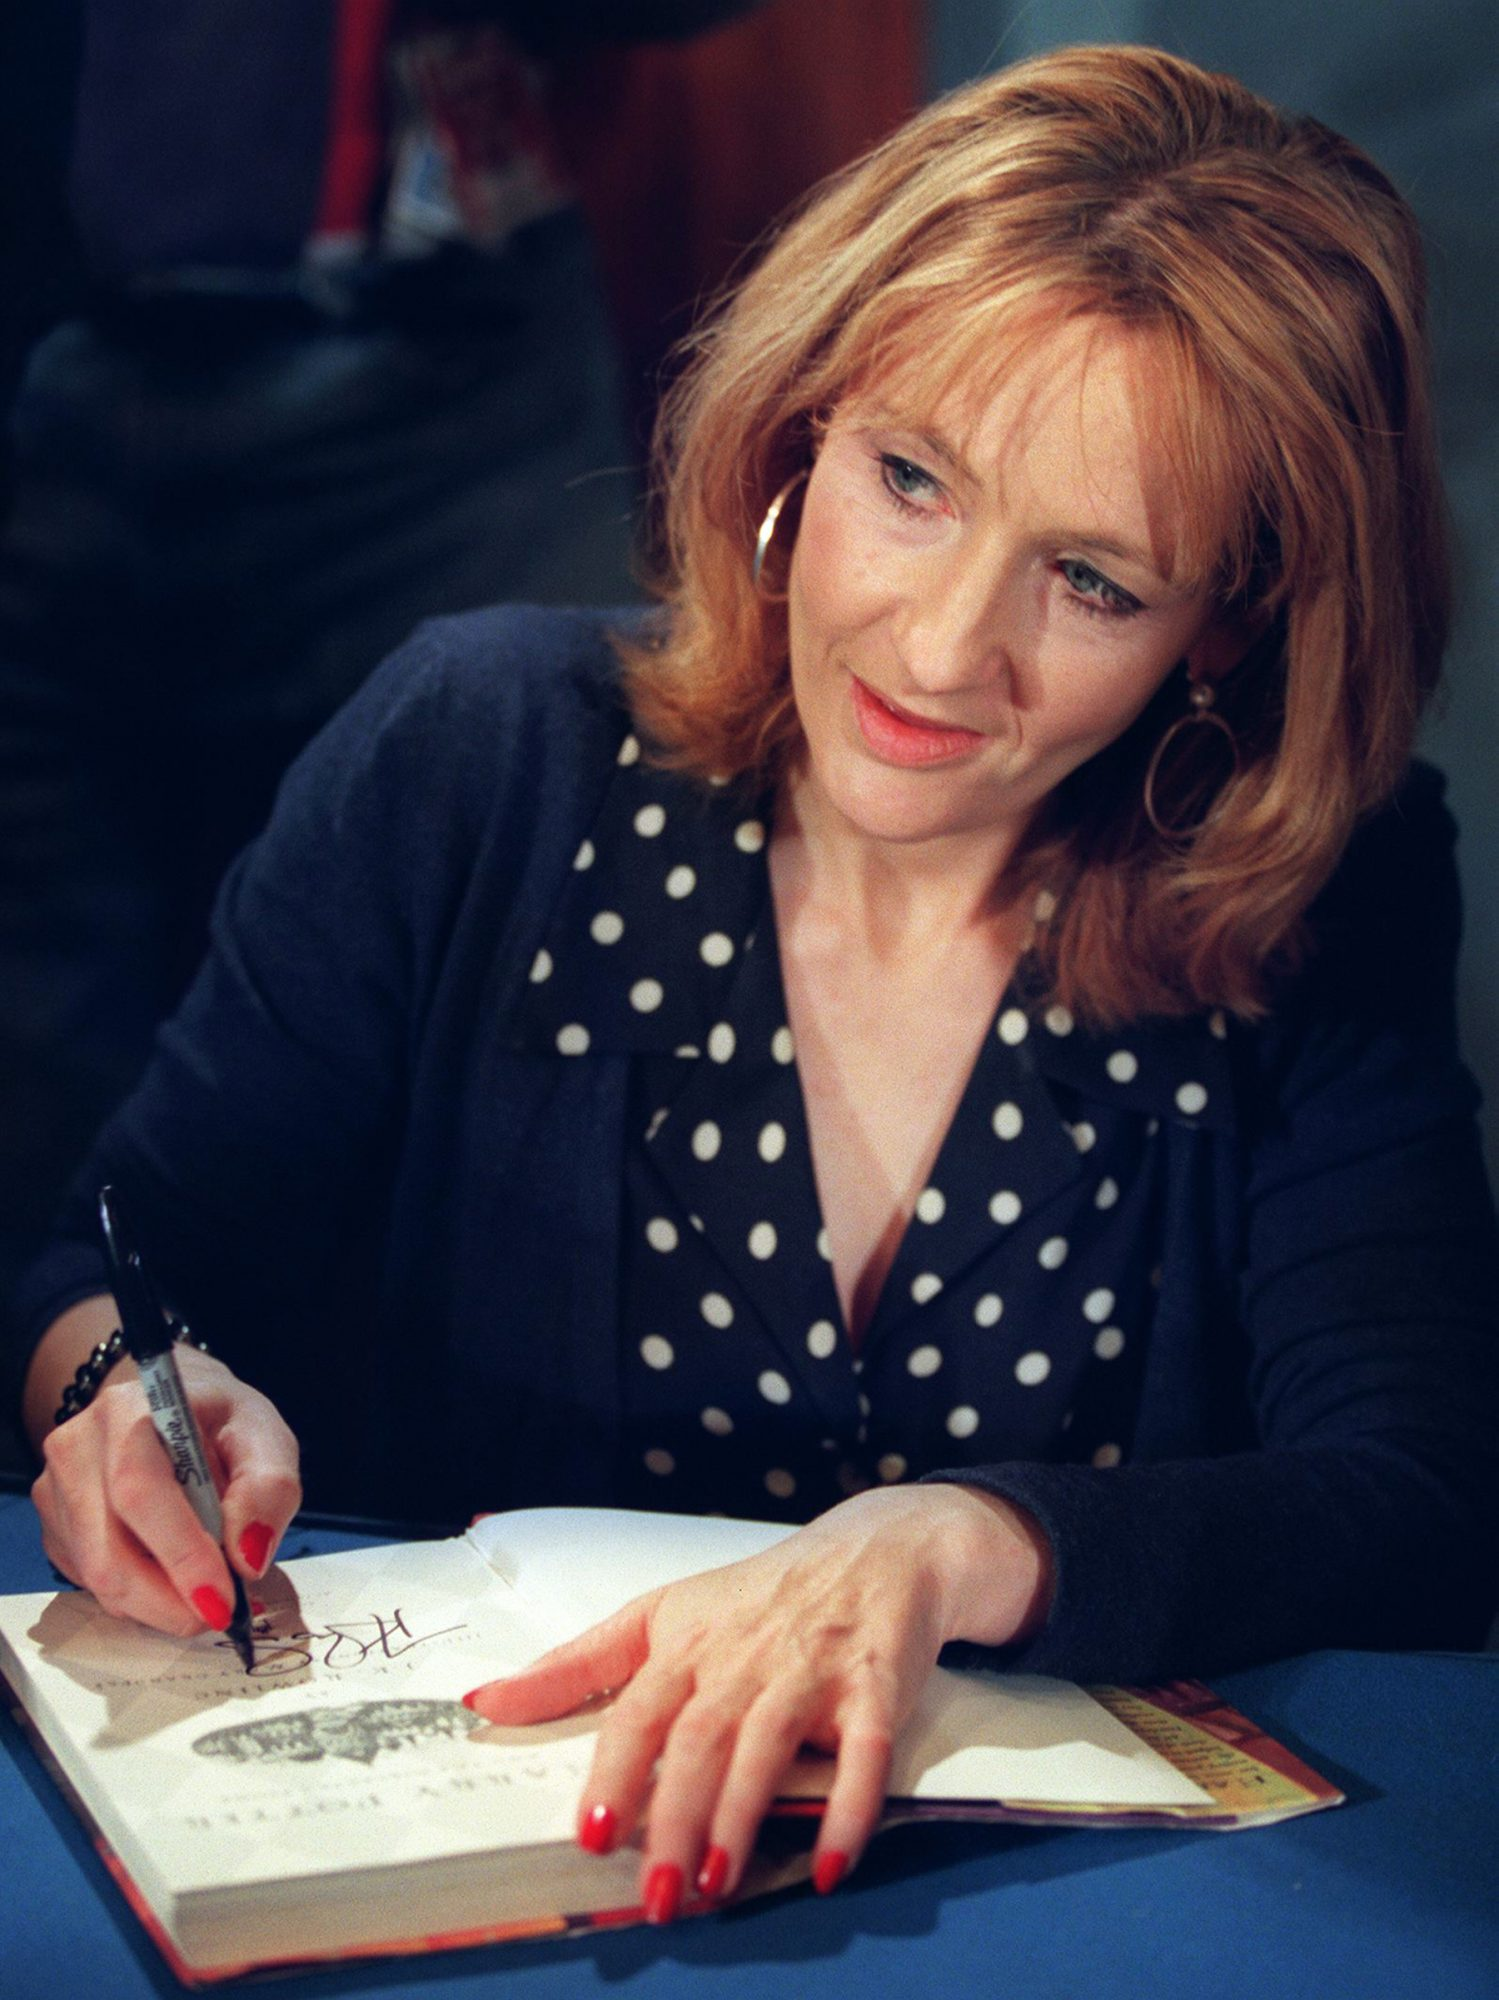 J.K. Rowling, author of the best-selling Harry Pot